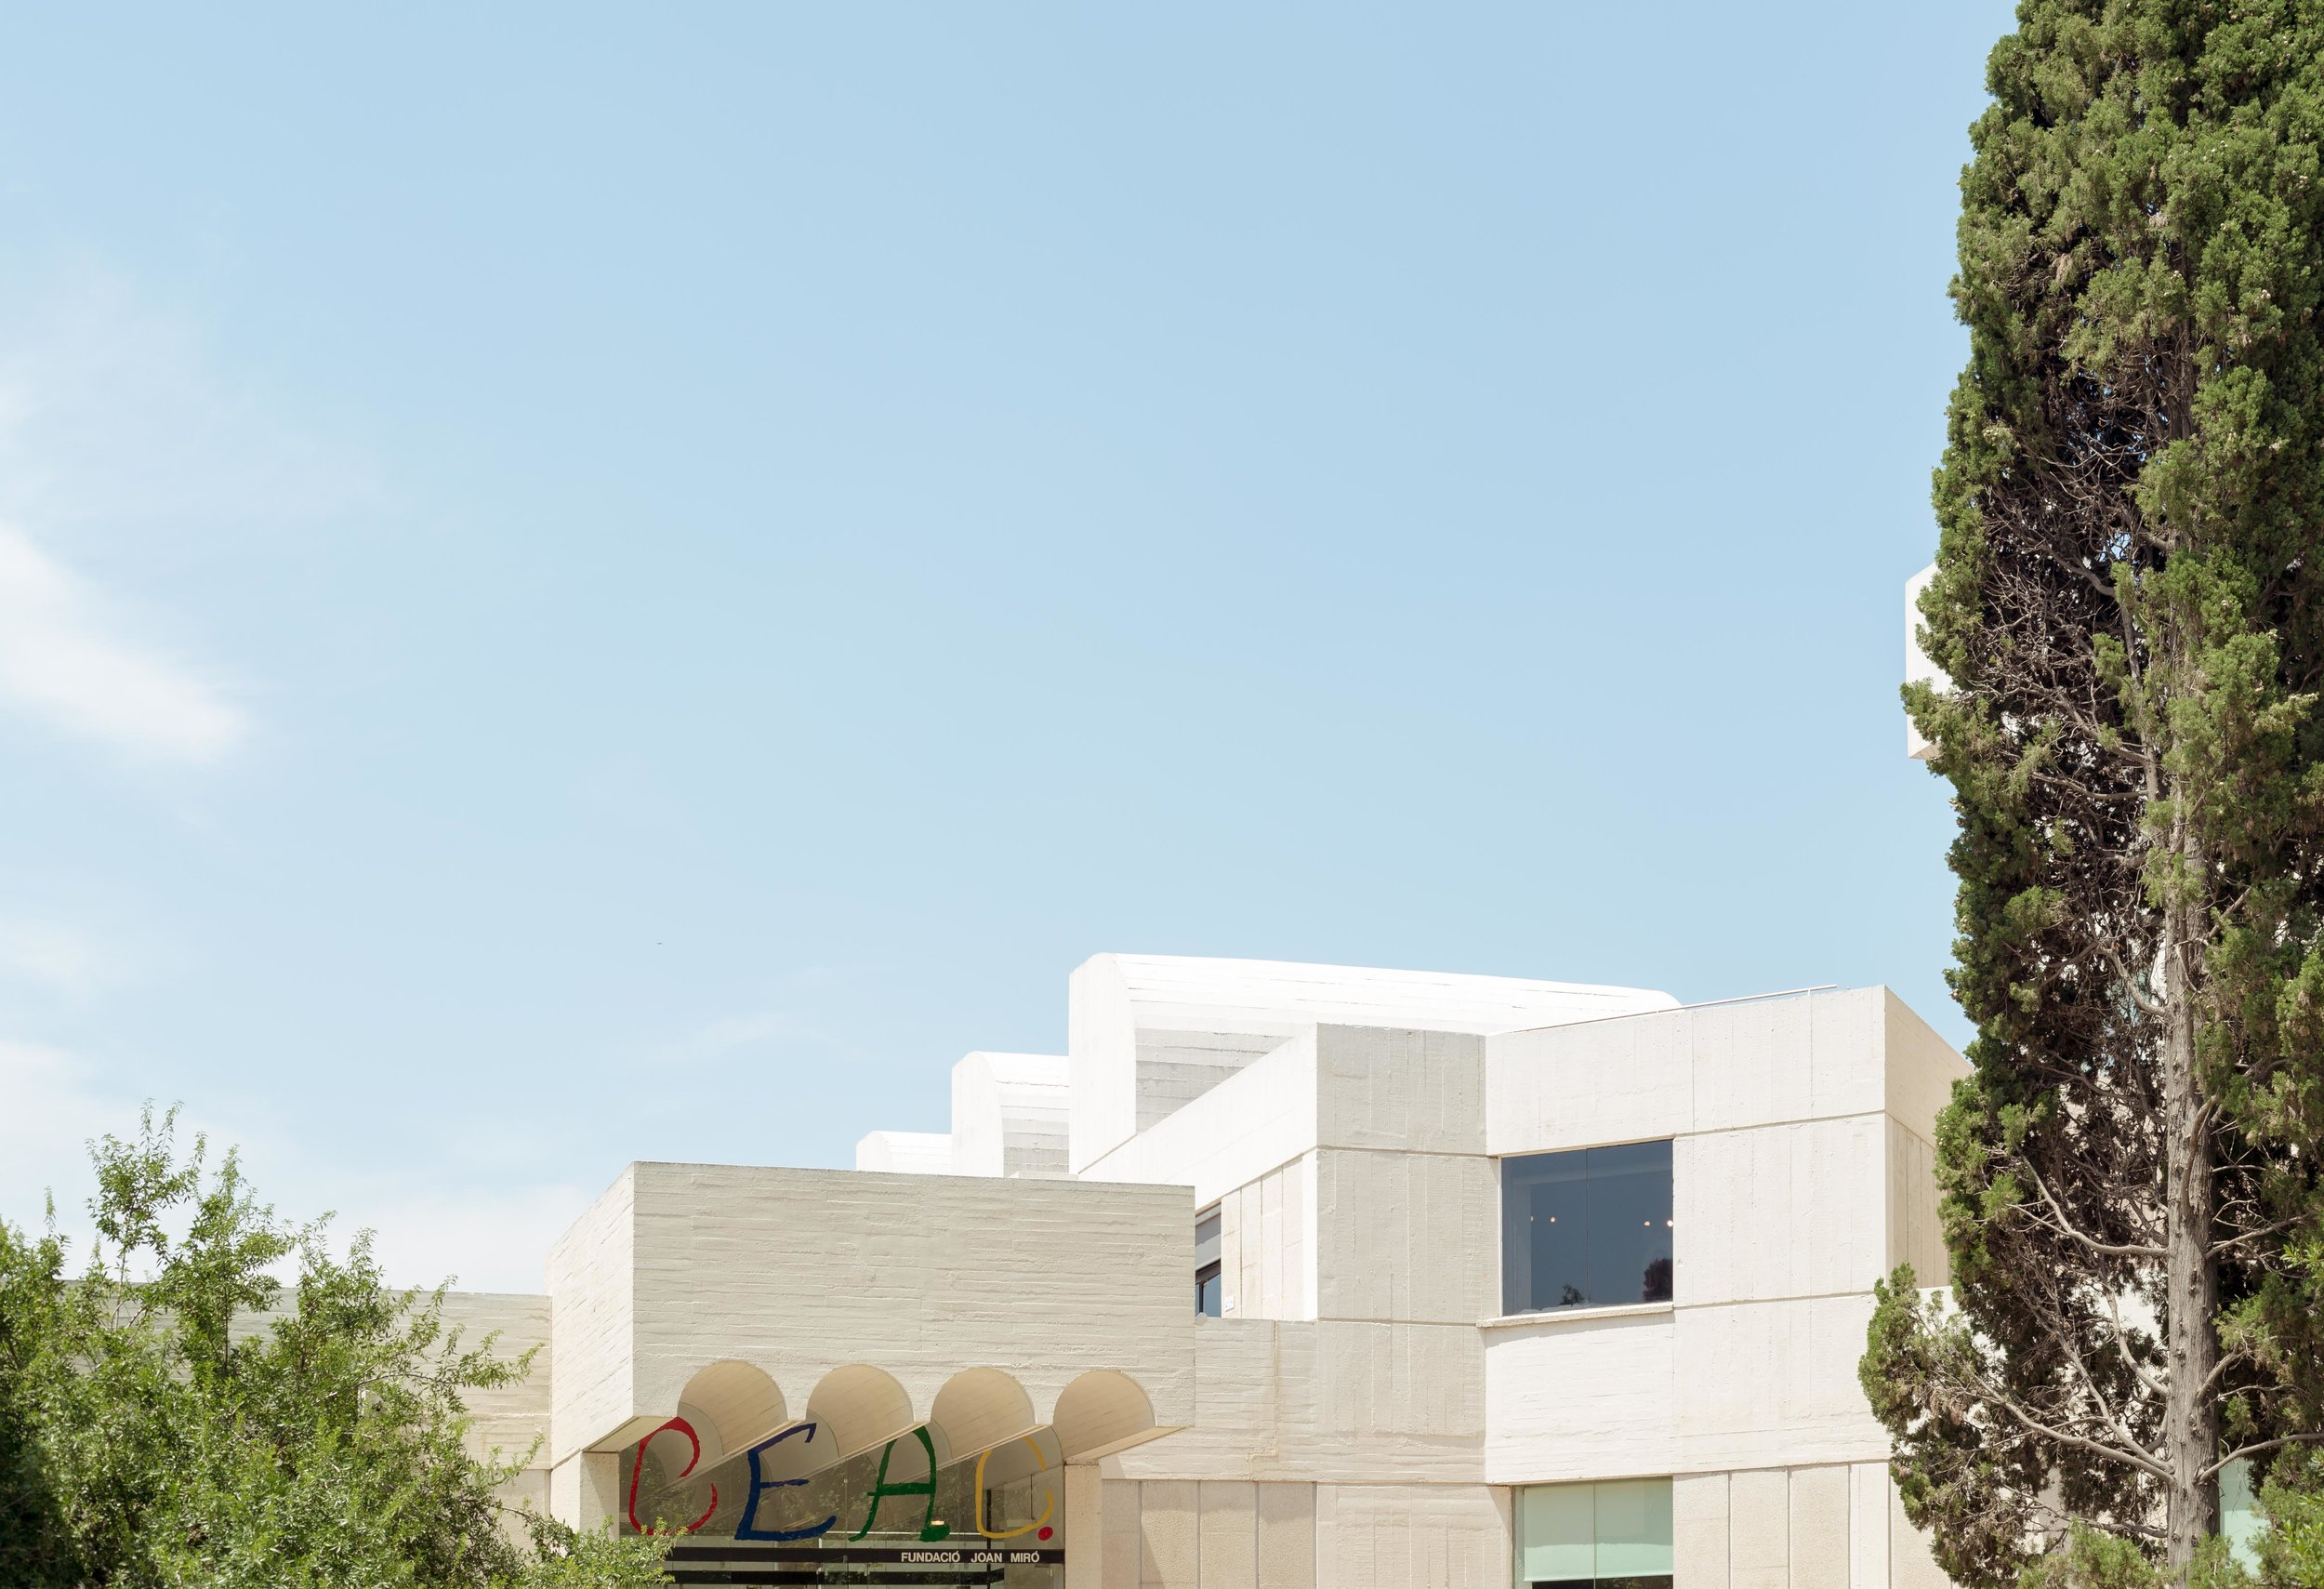 Architectural photograph series of the Fundació Joan Miró, Barcelona. Museum of modern art honouring Joan Miró designed by architect Josep Lluís Sert. By Daniel Walker Photography